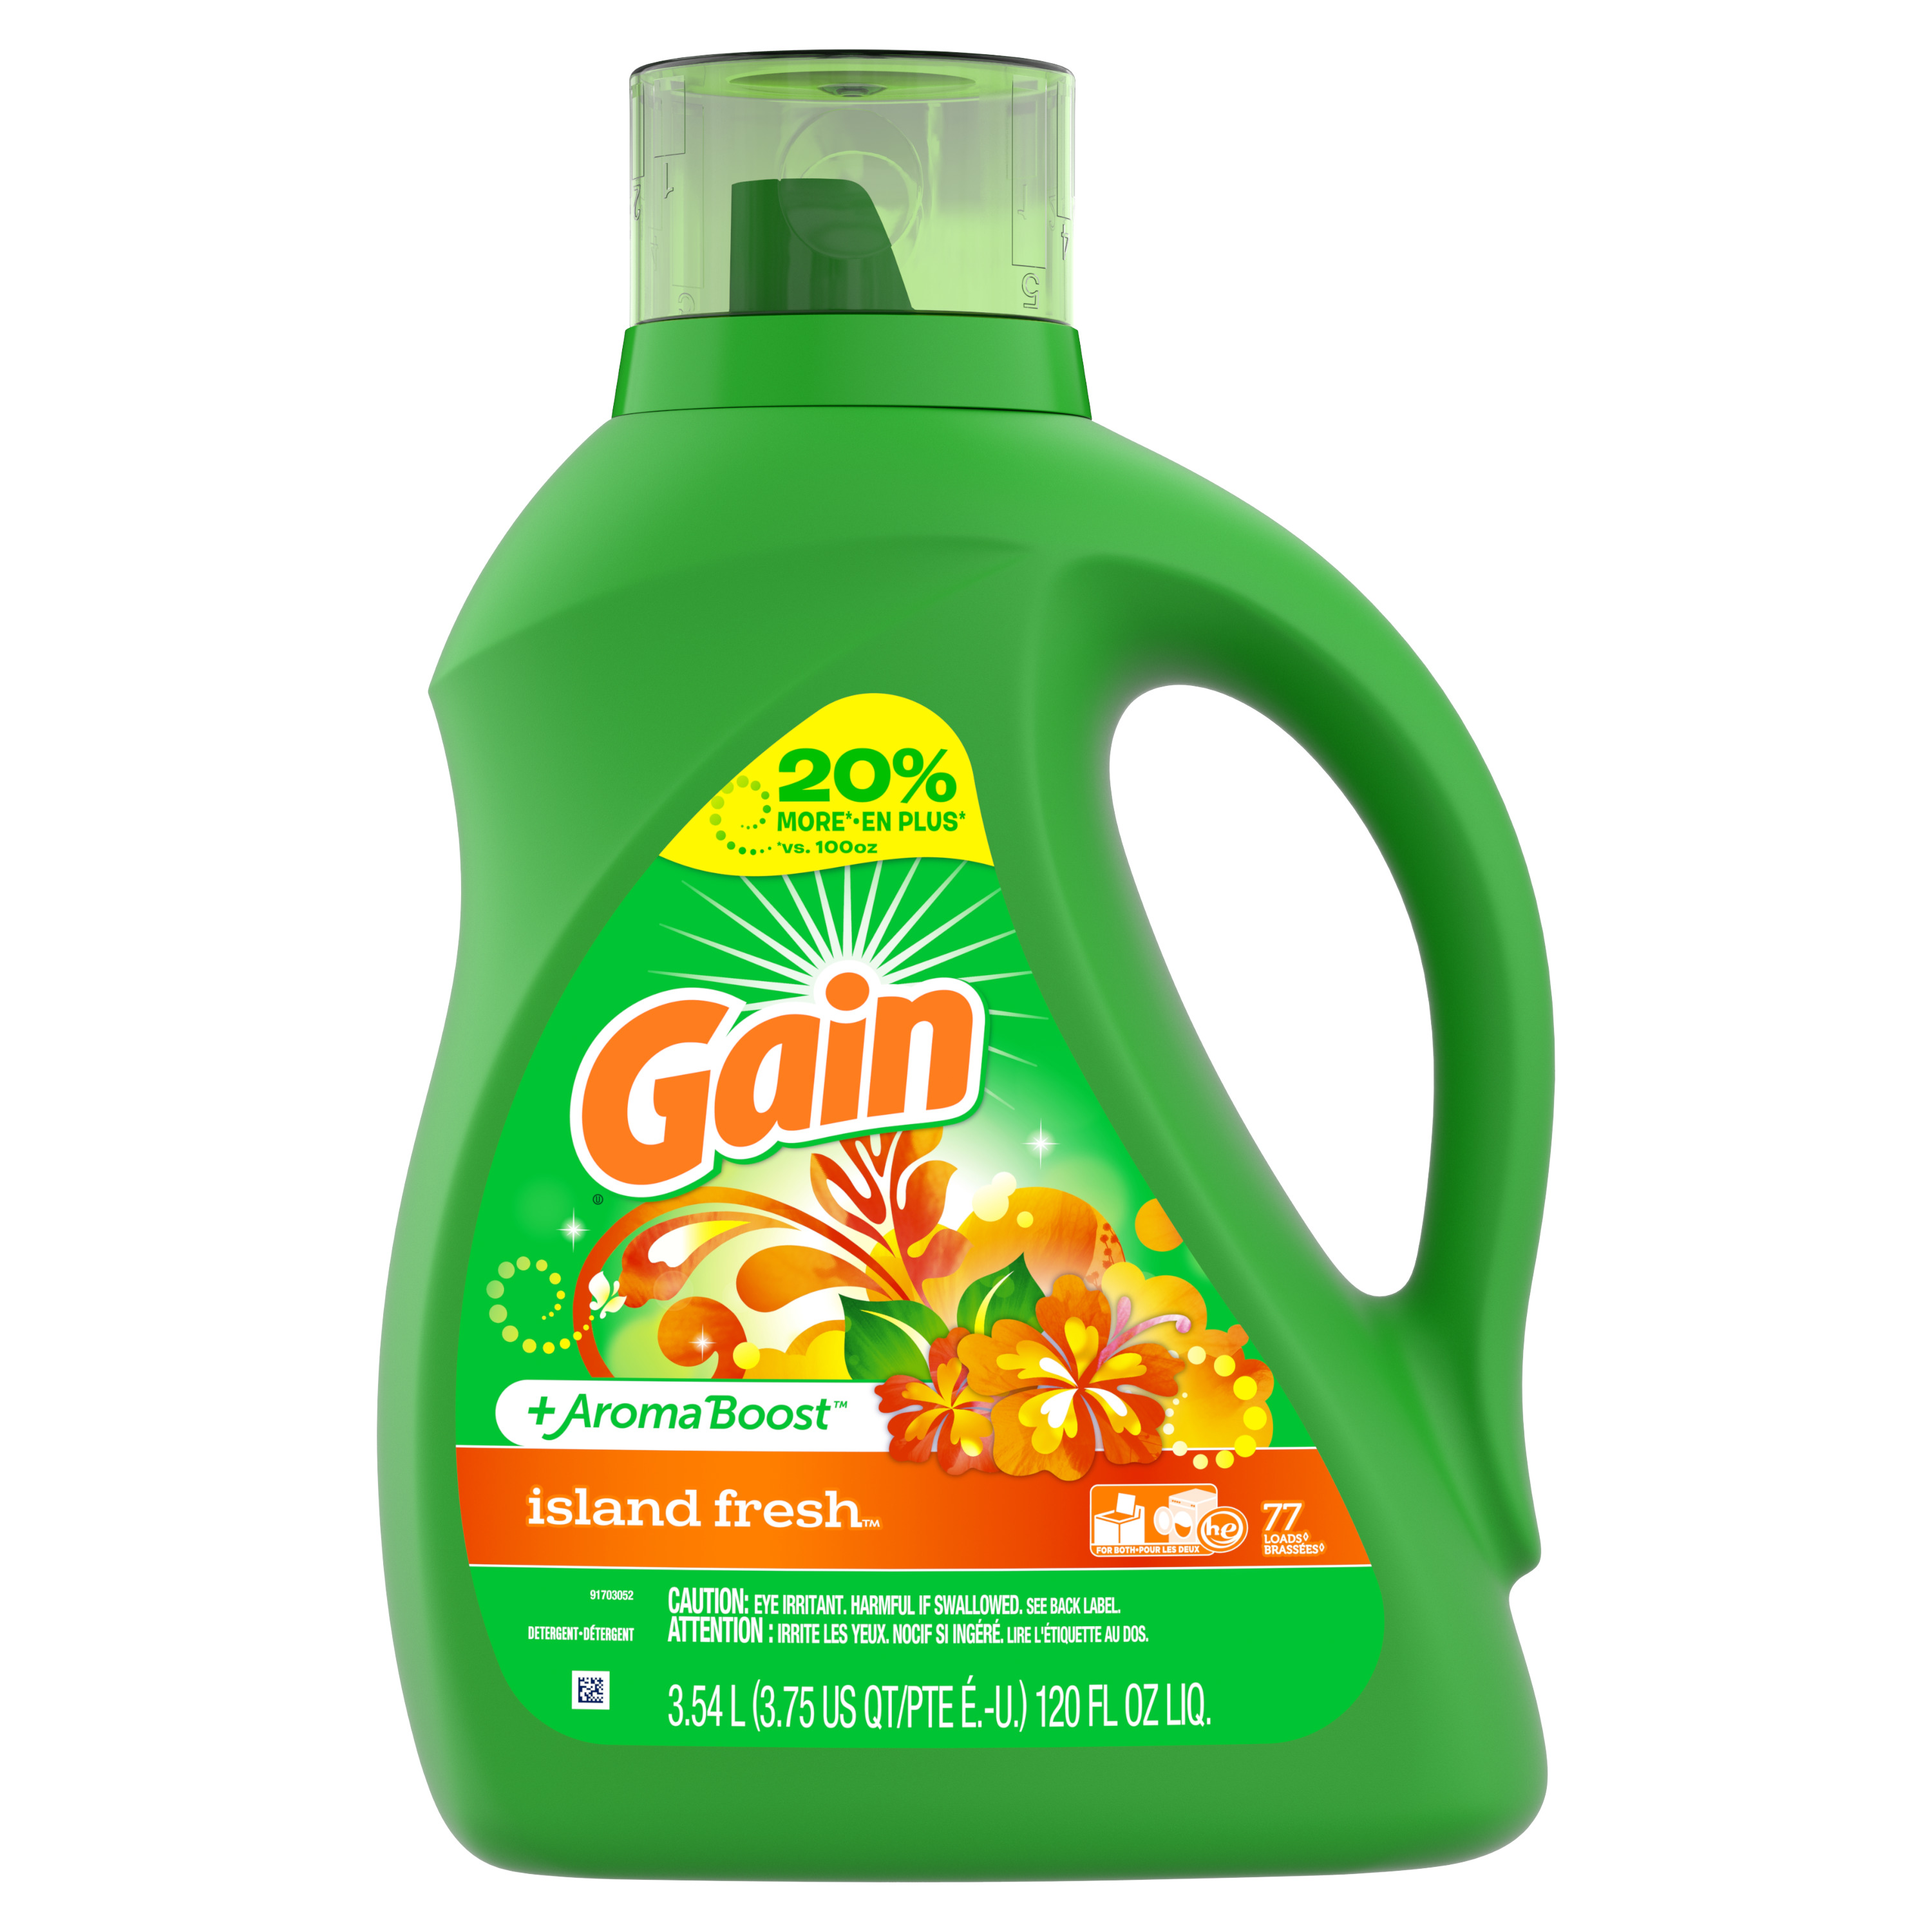 Gain + Aroma Boost Liquid Laundry Detergent, Island Fresh, 77 Loads, 120 fl oz